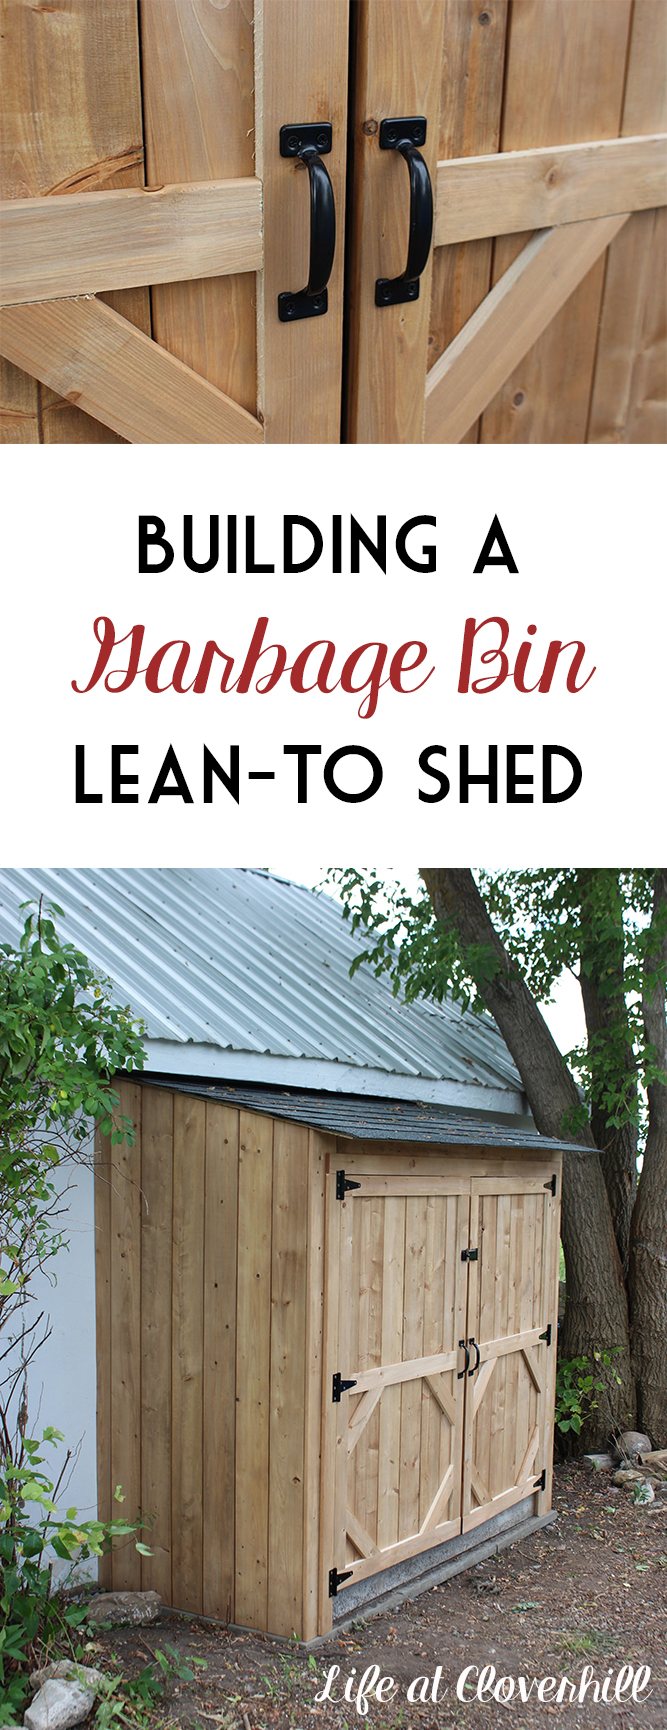 garbage-bin-lean-to-shed-pin